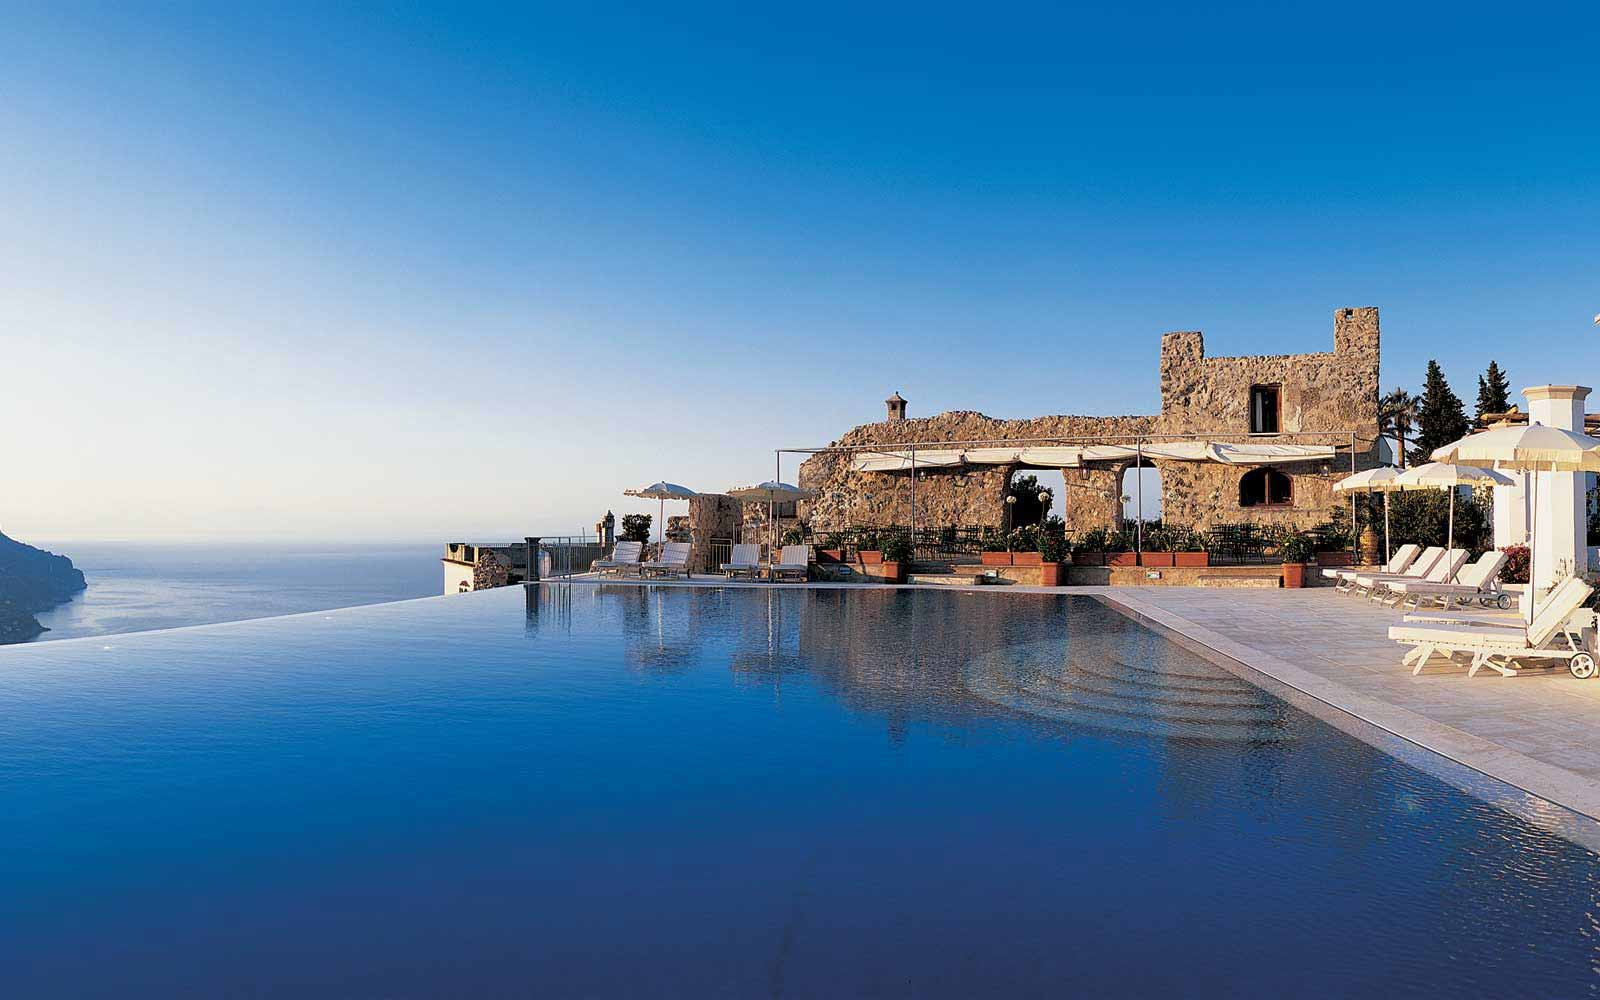 Infinity pool at Belmond Hotel Caruso